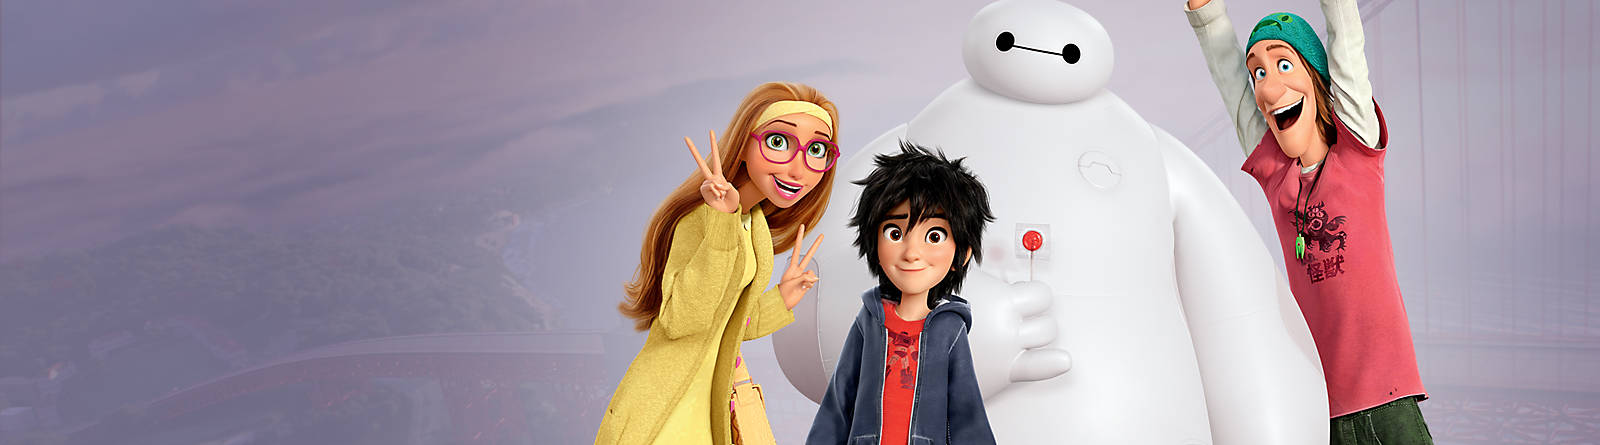 Big Hero 6 Discover the exciting world of Big Hero 6 with our toys, collectibles, figurines and more